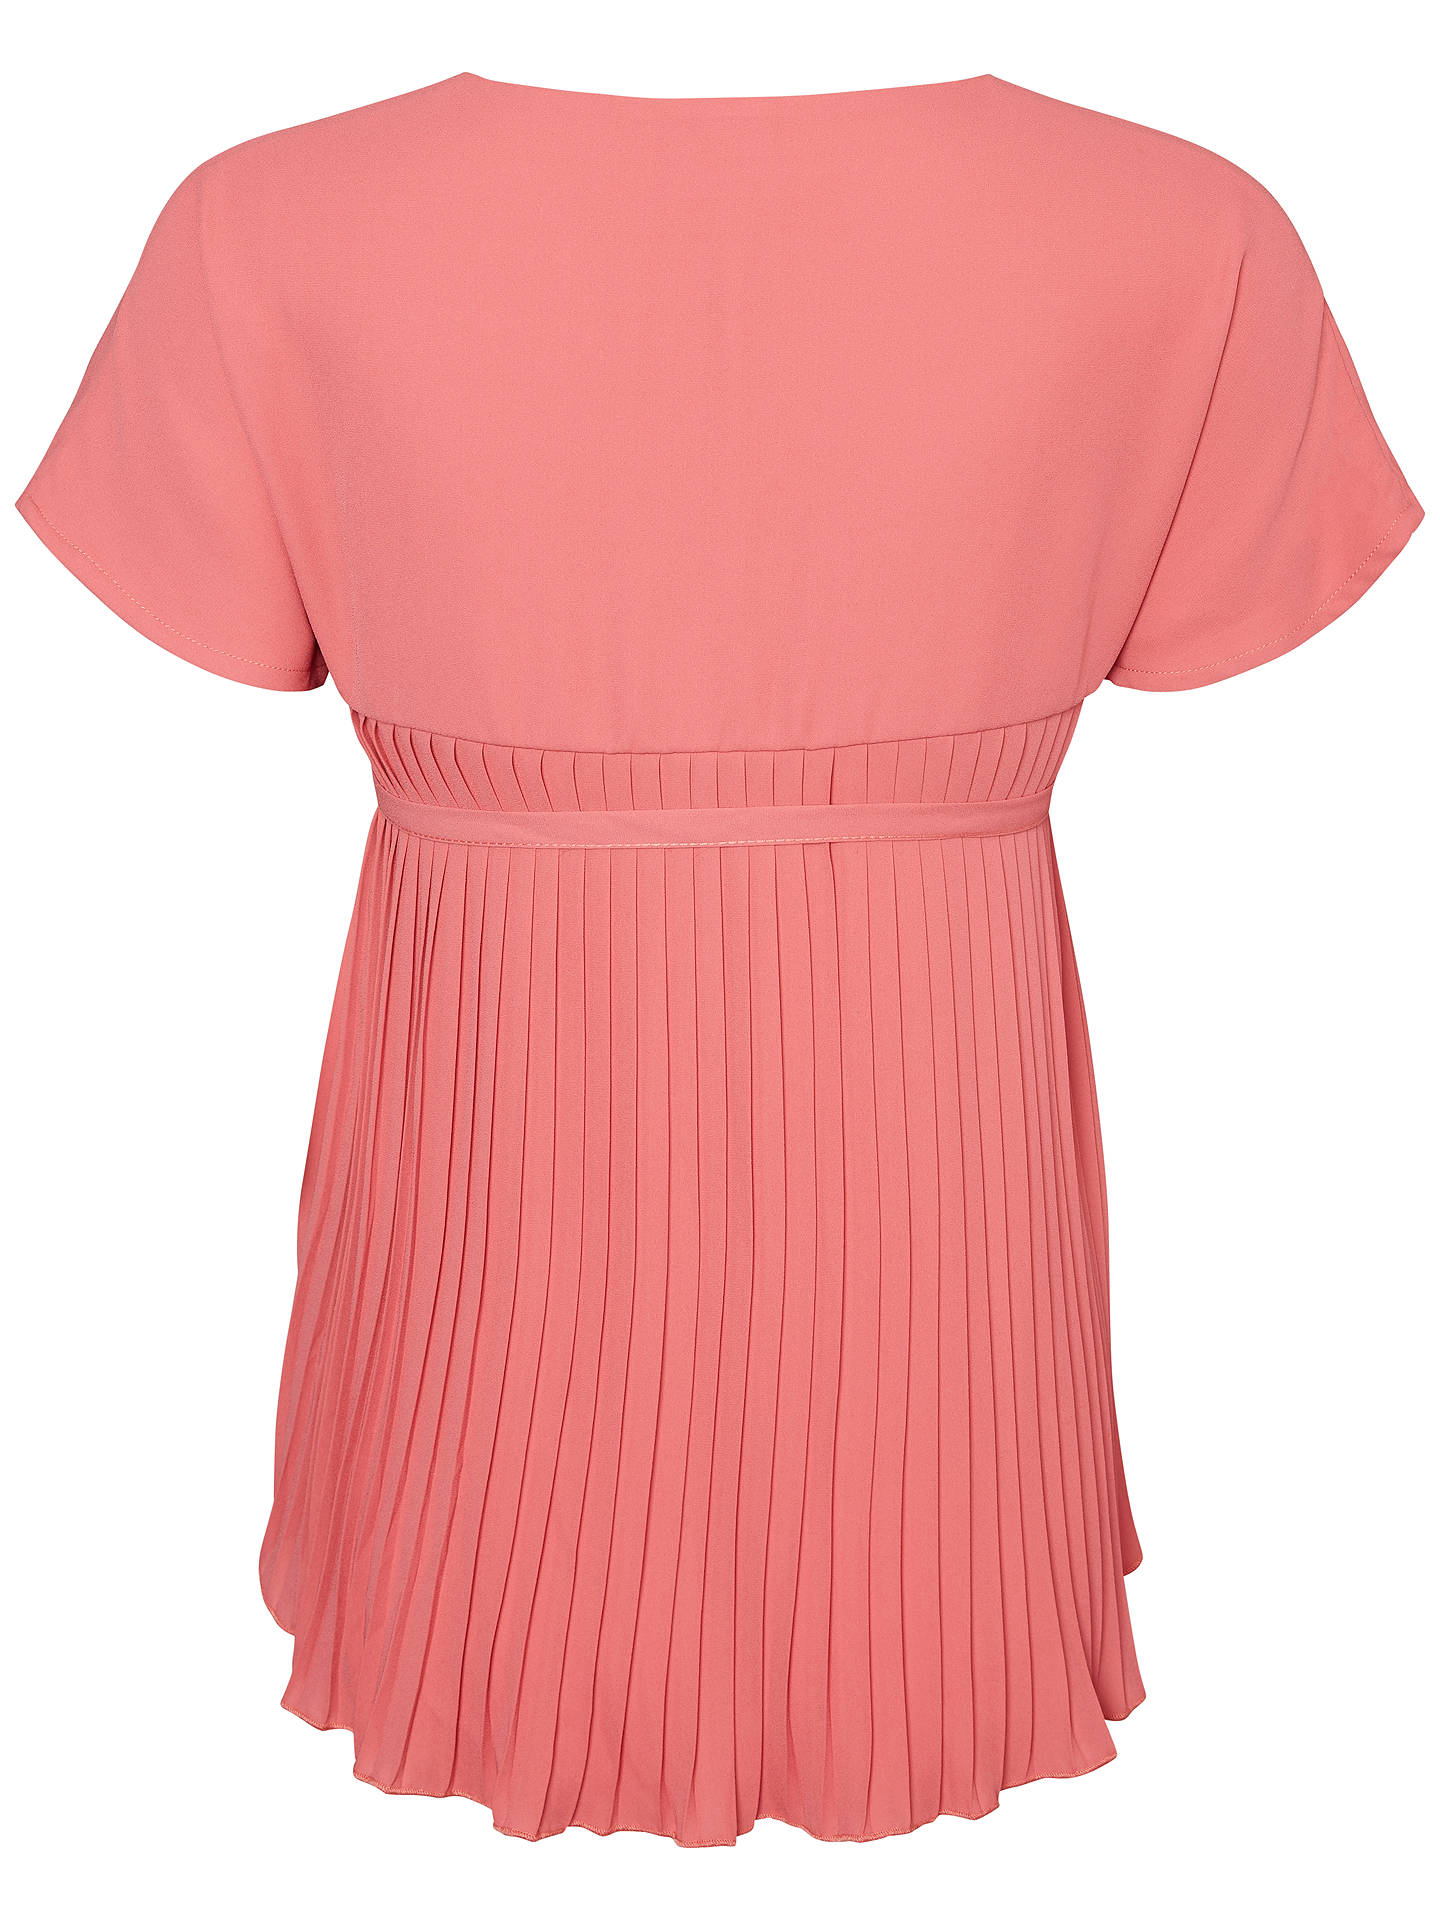 BuyMamalicious Aneth Pleat Top, Pink, S Online at johnlewis.com